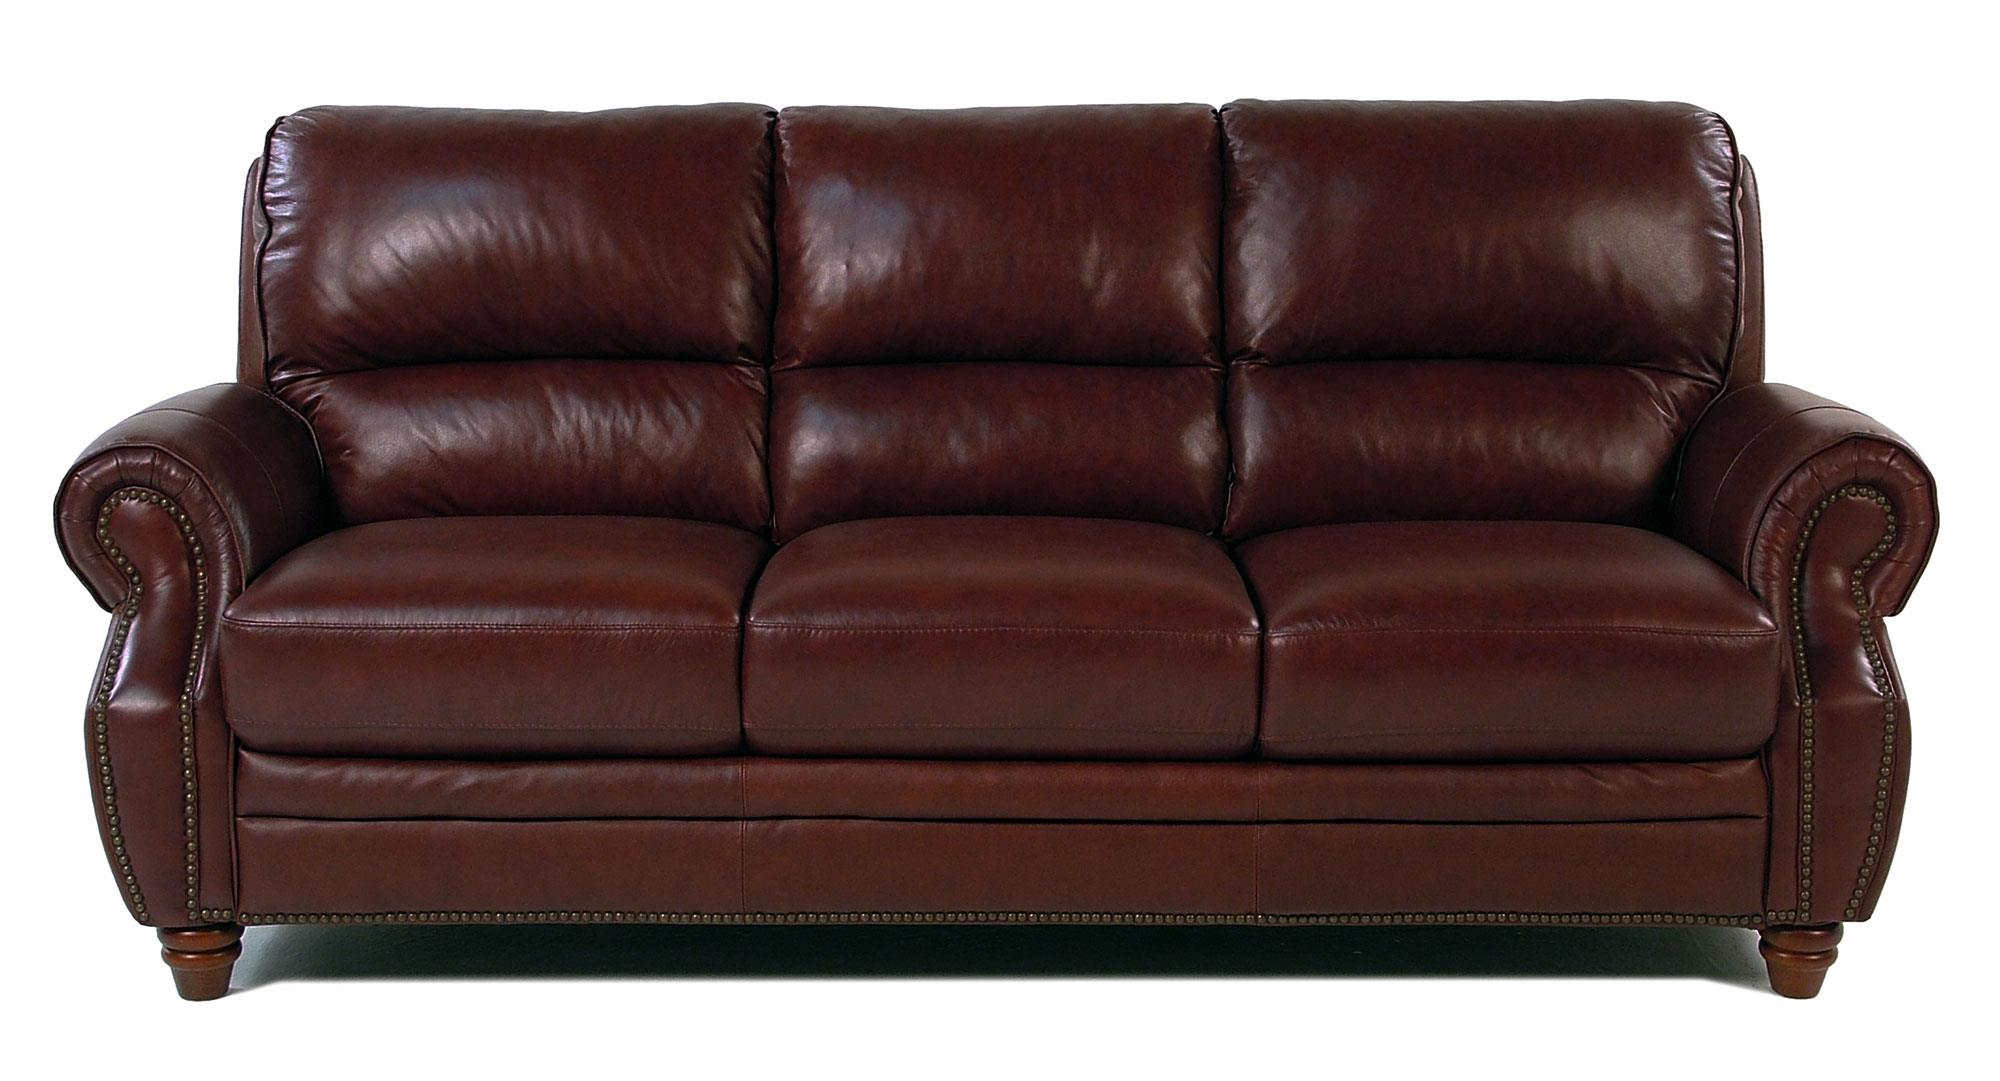 Giovani Barrister Traditional Leather Sofa w/ Nailhead Trim - Item Number: 10441NH-3S